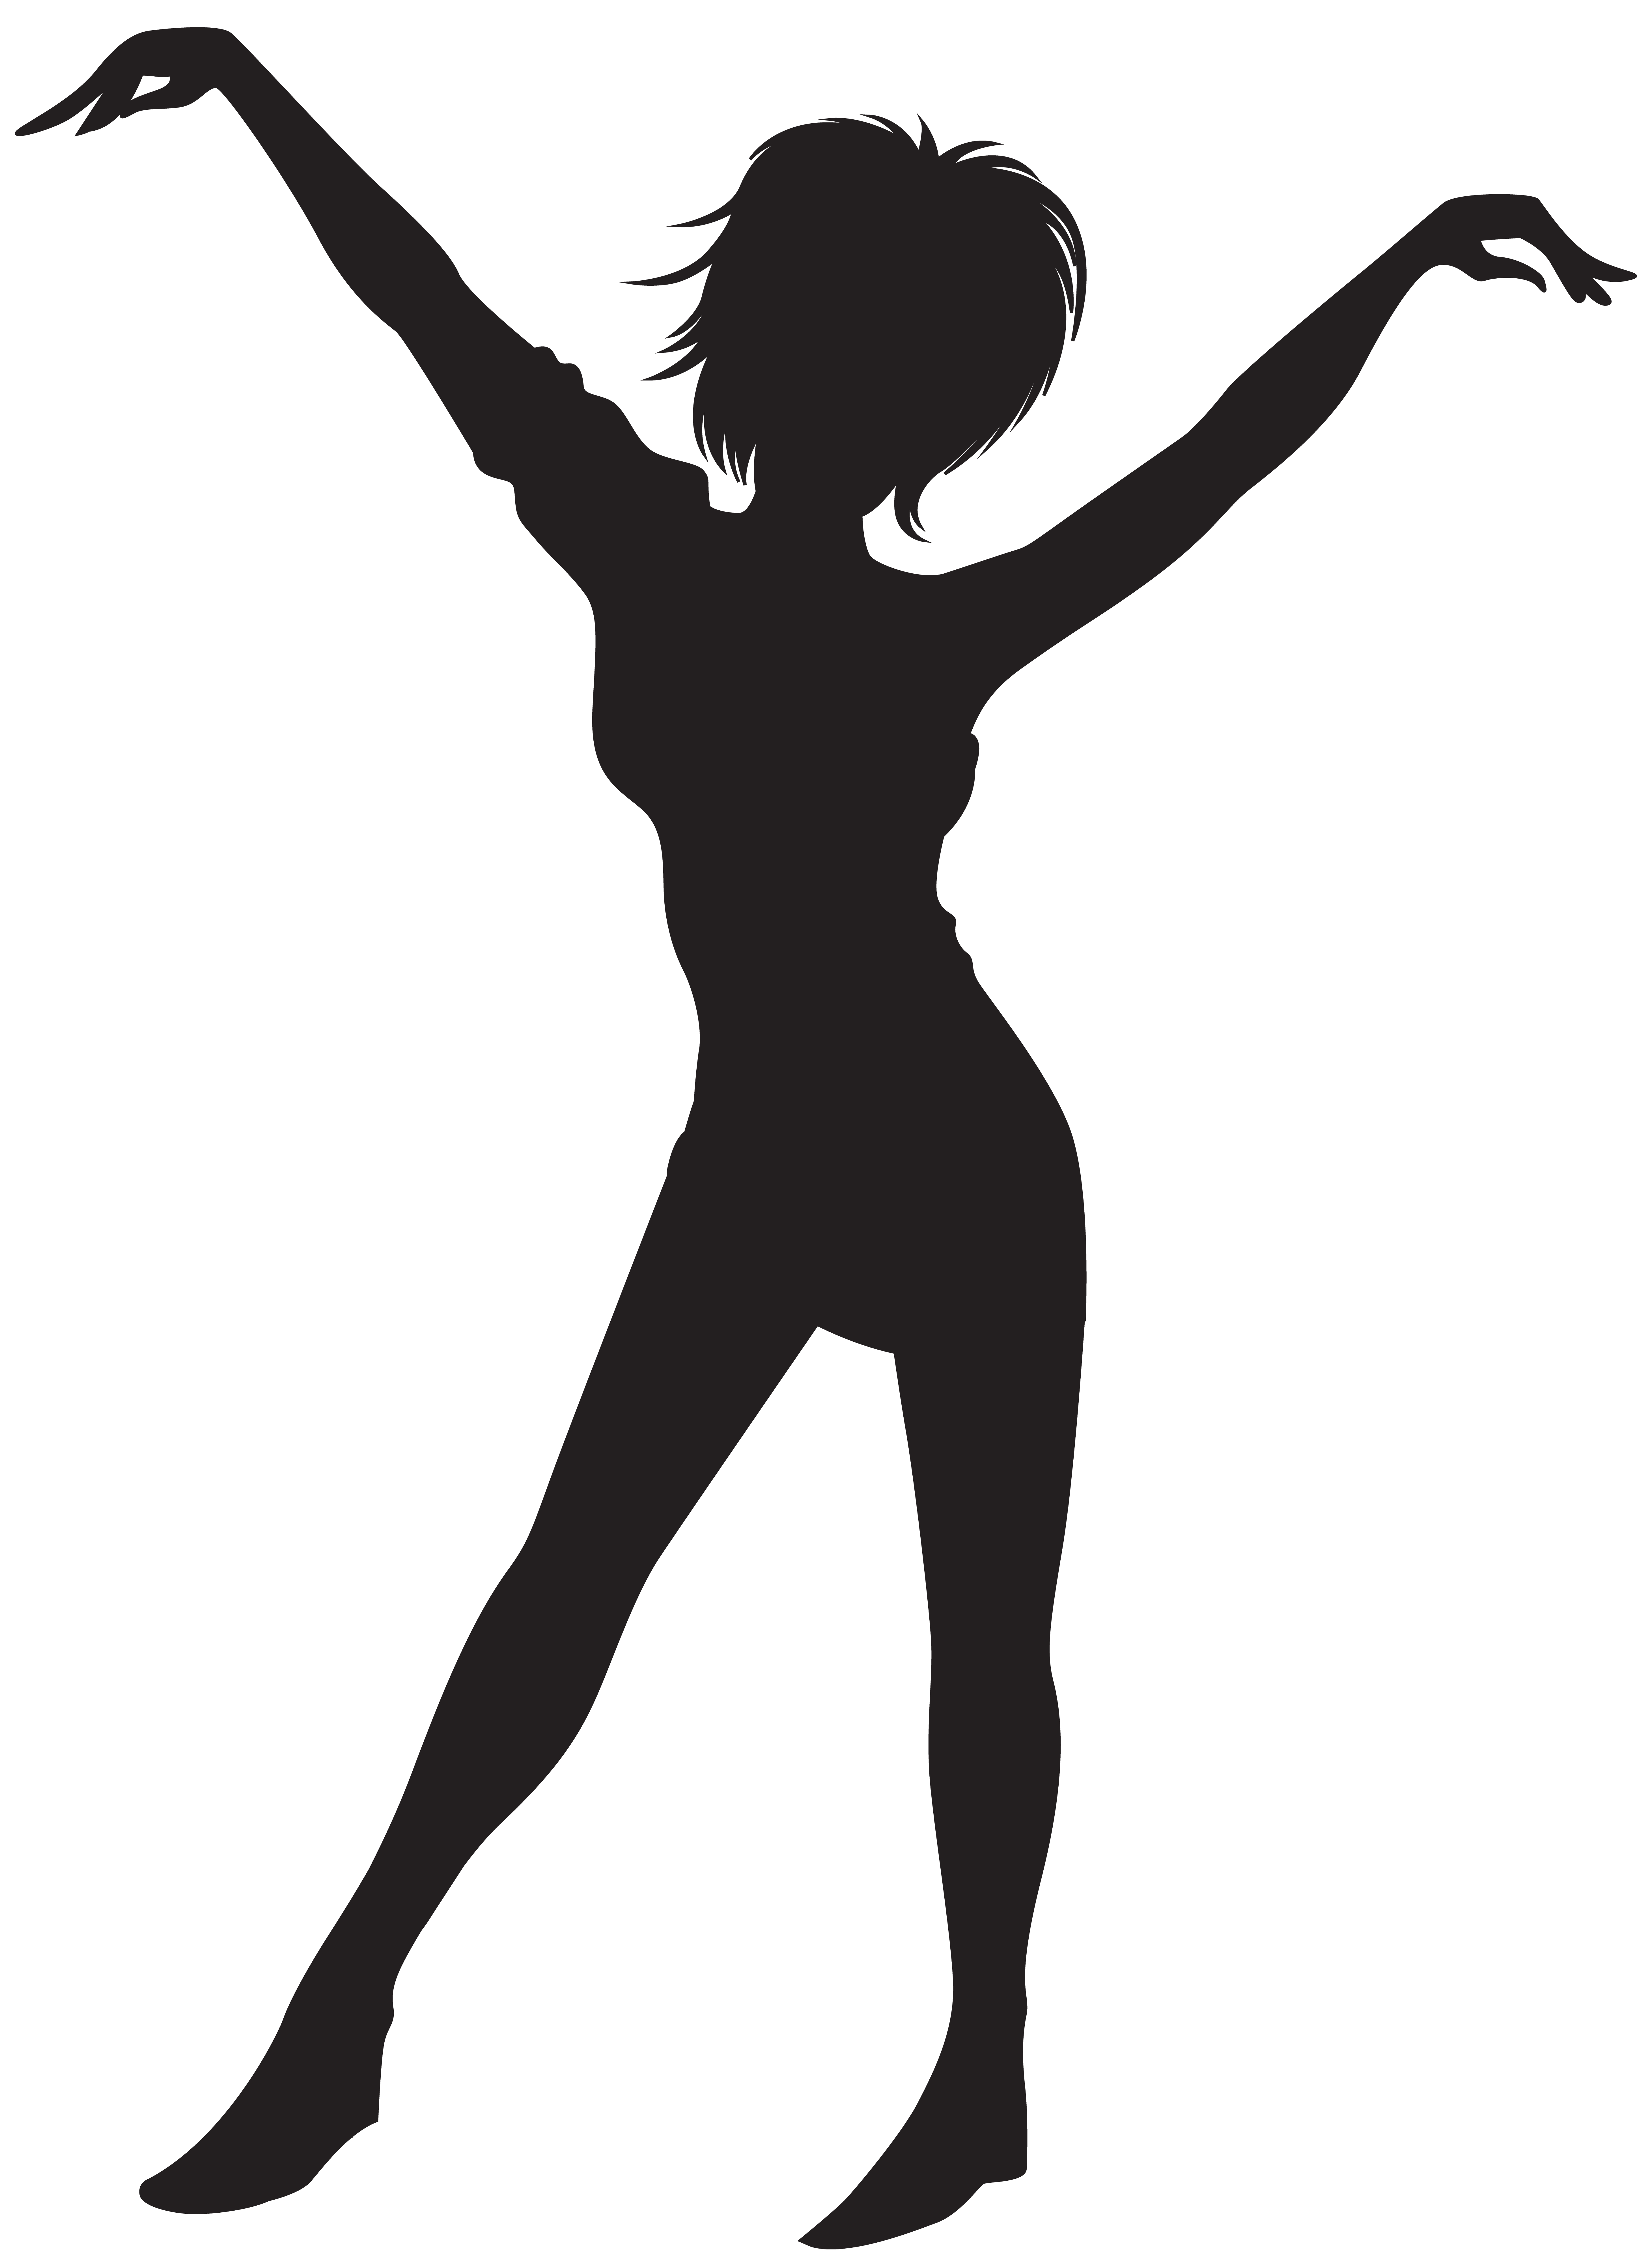 Dancing girl silhouette image. Dance clip art png svg free stock